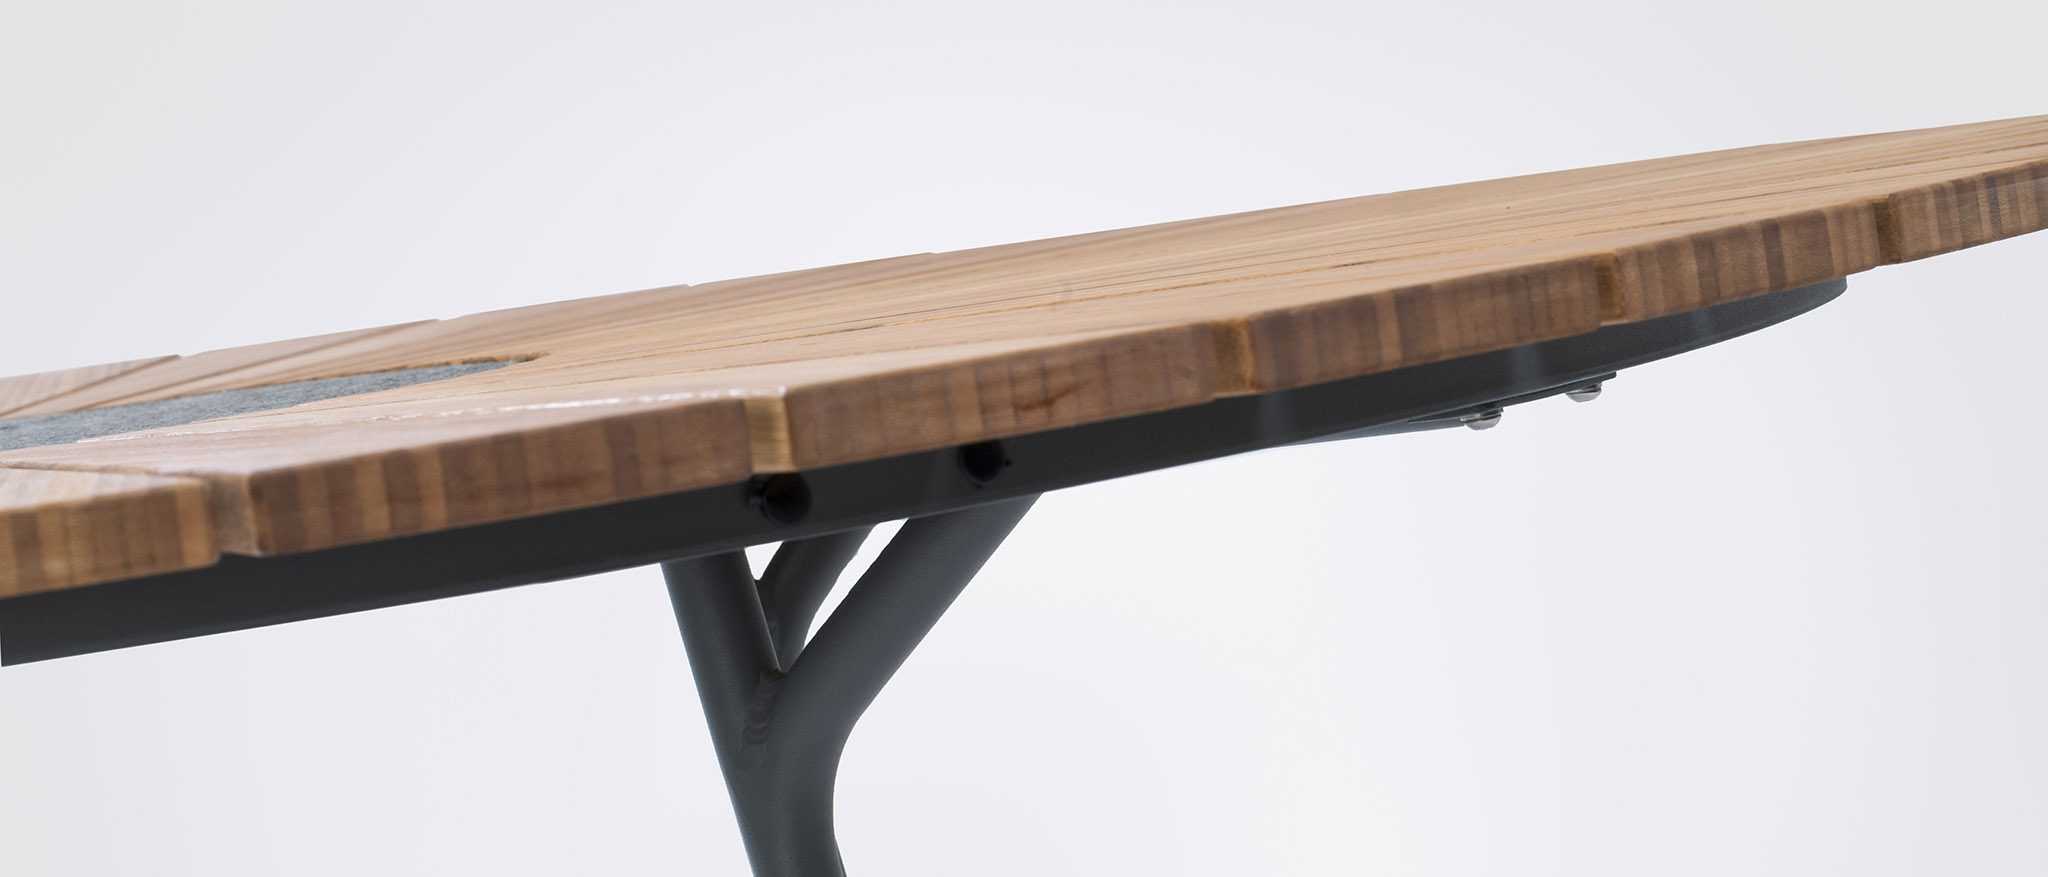 PLAYNK Bamboo table details